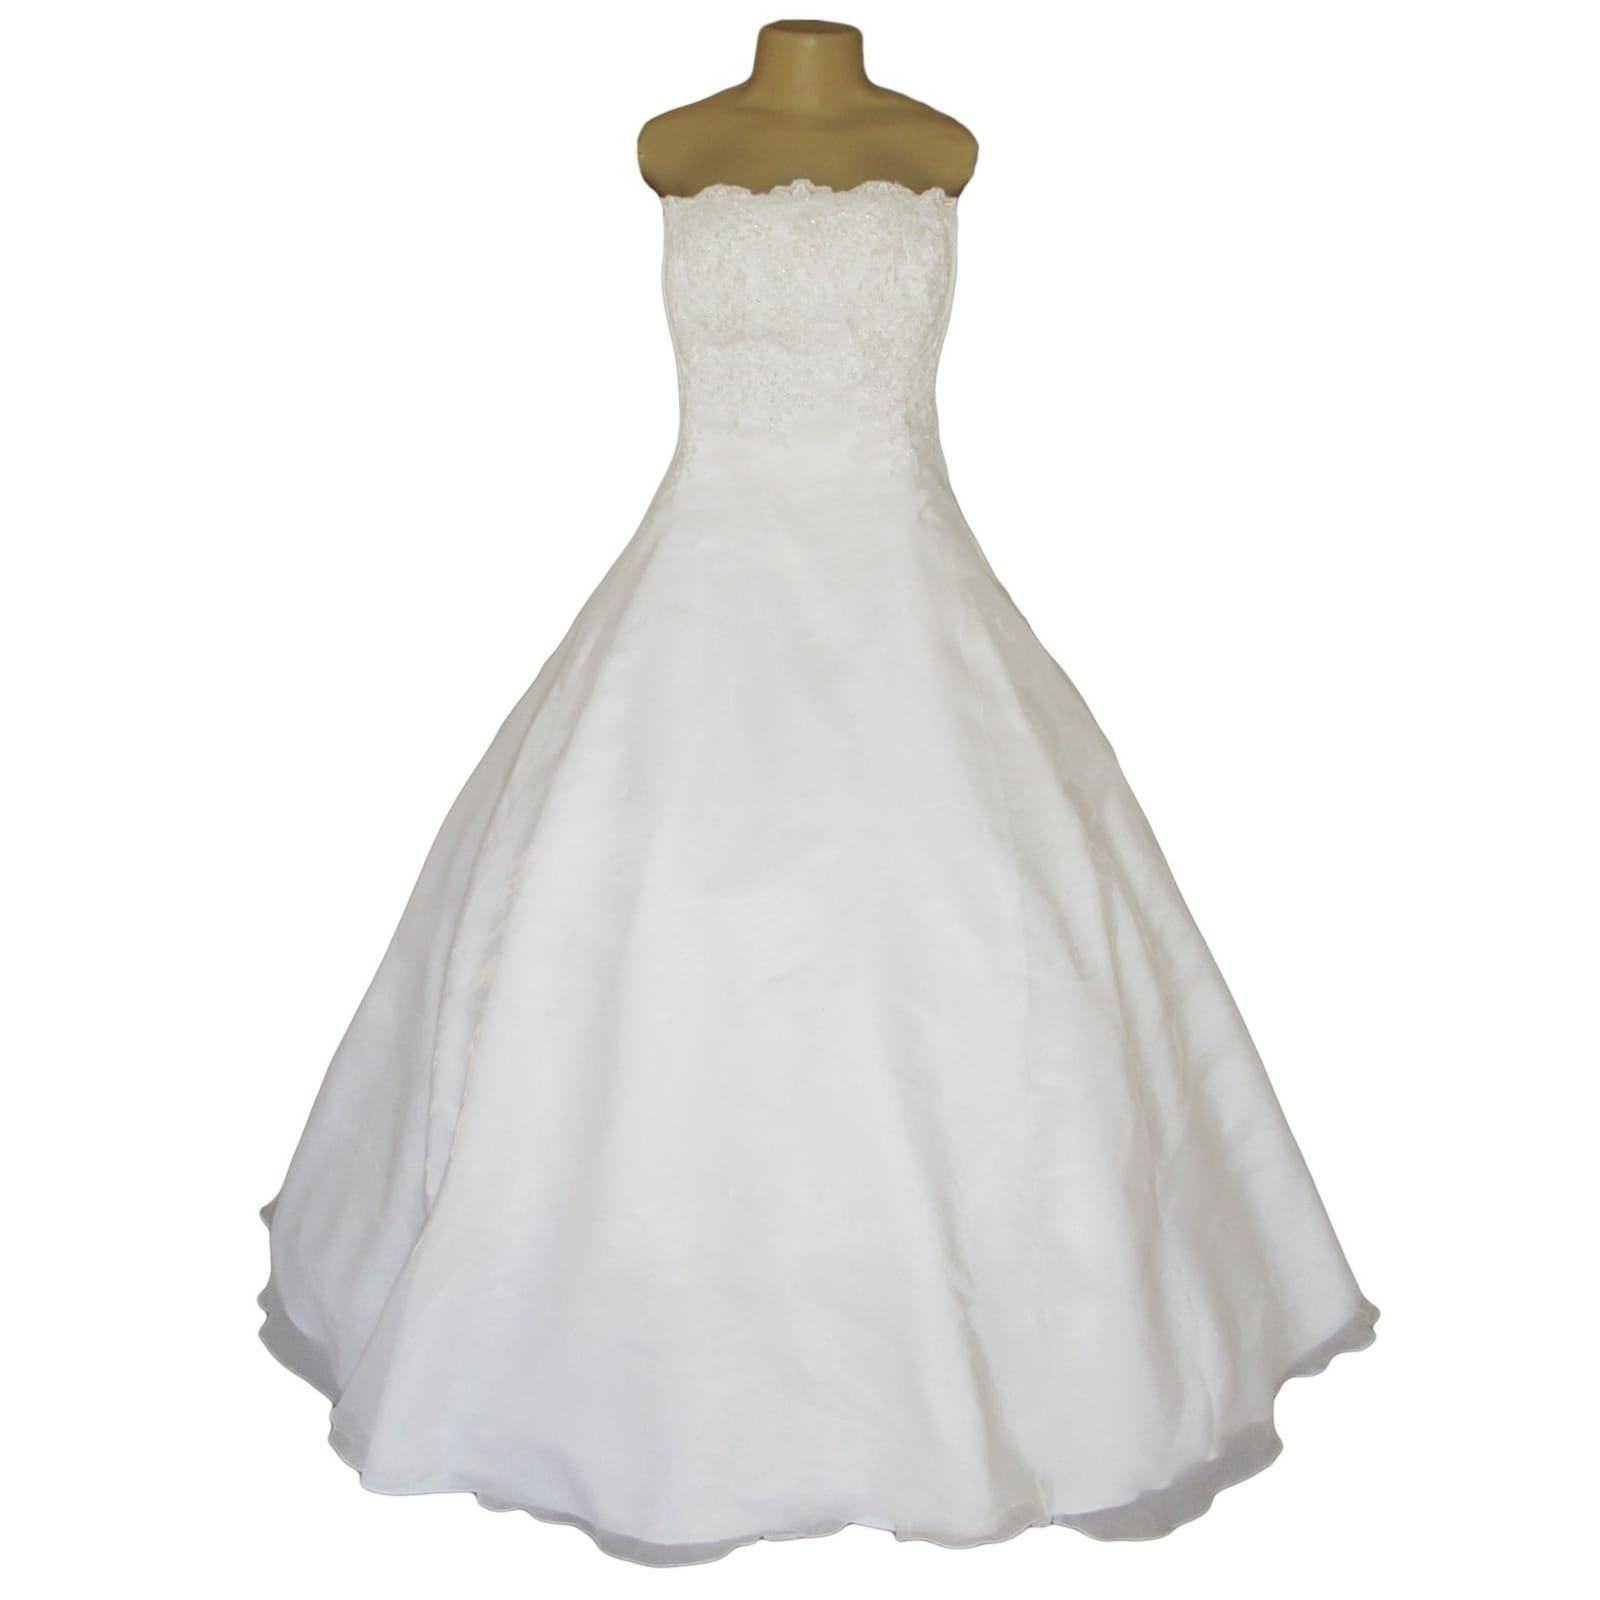 White organza a-line boob tube custom made wedding ball gown 10 white, organza, a-line, boob tube, custom-made wedding ball gown. Bodice detailed with lace. Lace-up back. With a train & removable off-shoulder pleated organza straps detailed with lace. With shimmer blush length veil.